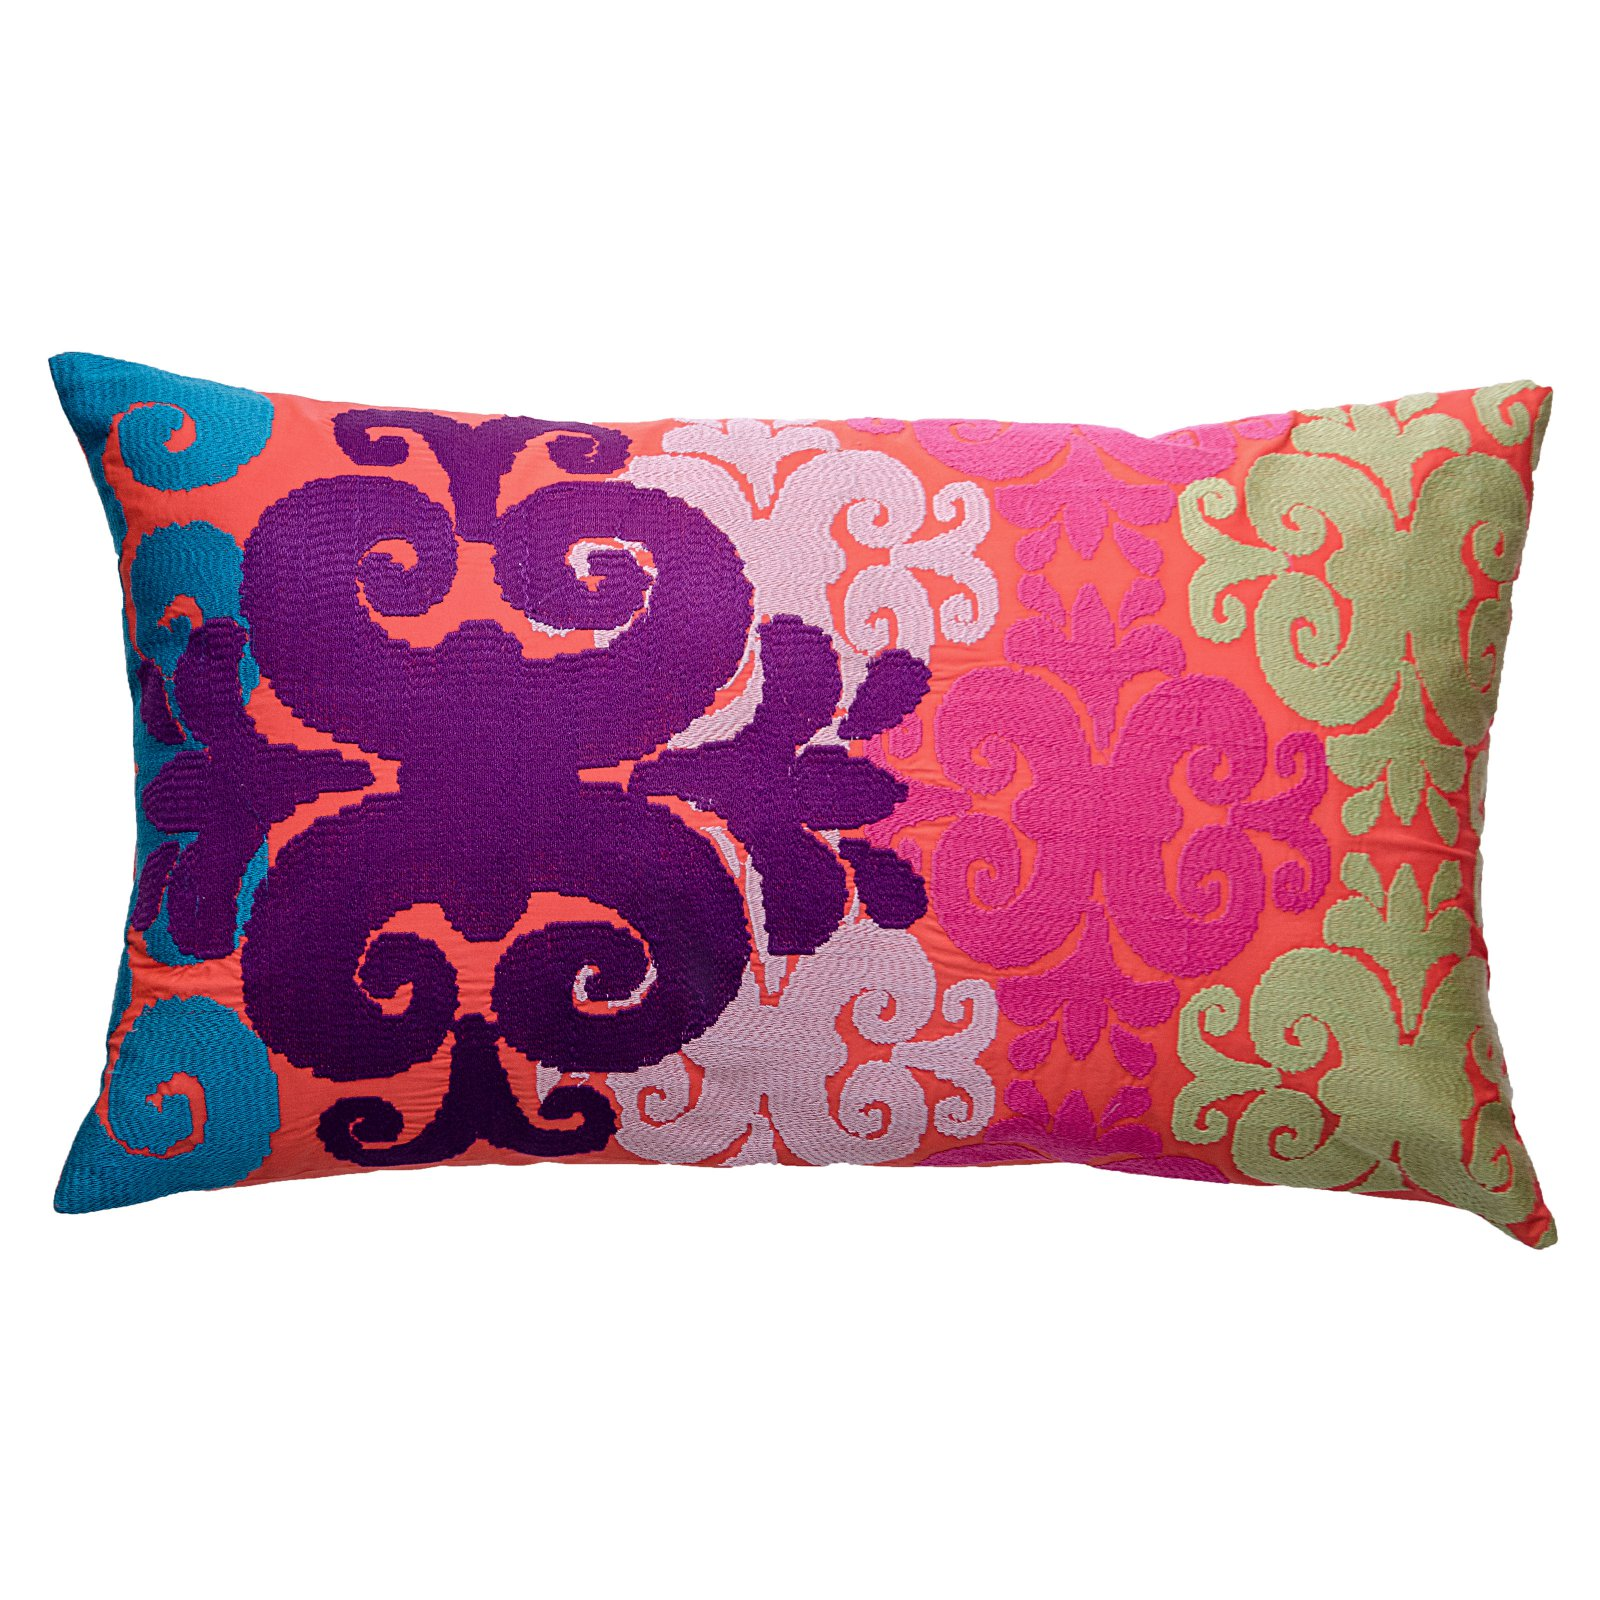 Koko Company TOTEM 15 x 27 in. Pillow